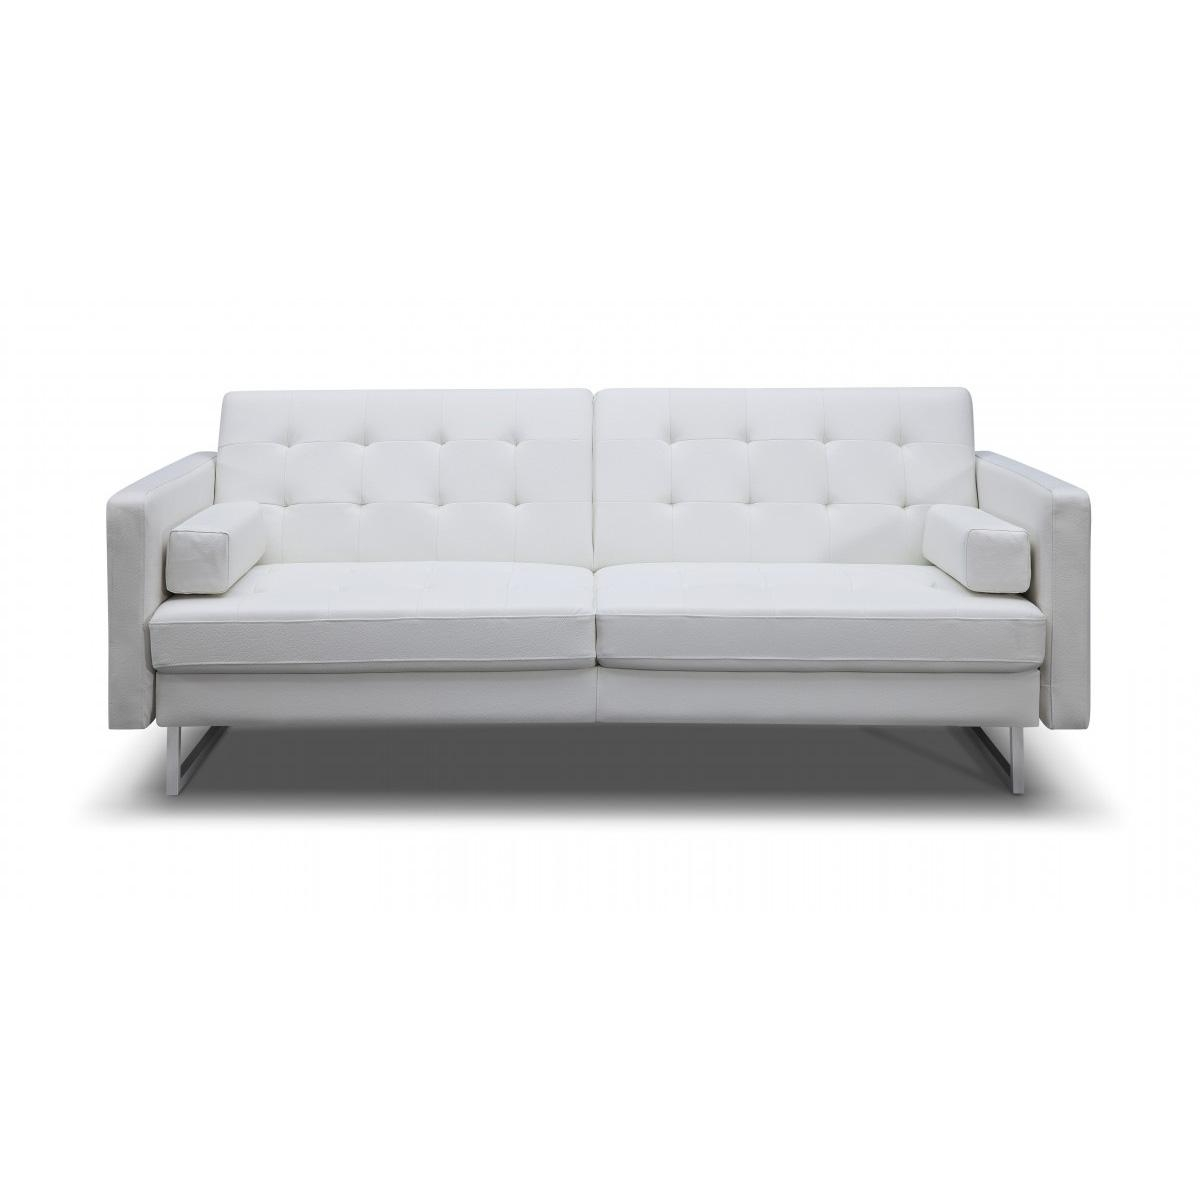 Sofas Center : Faux Leatherleeperofa 87F2517A59Db 1 Mainstays With Faux Leather Sleeper Sofas (Image 17 of 20)